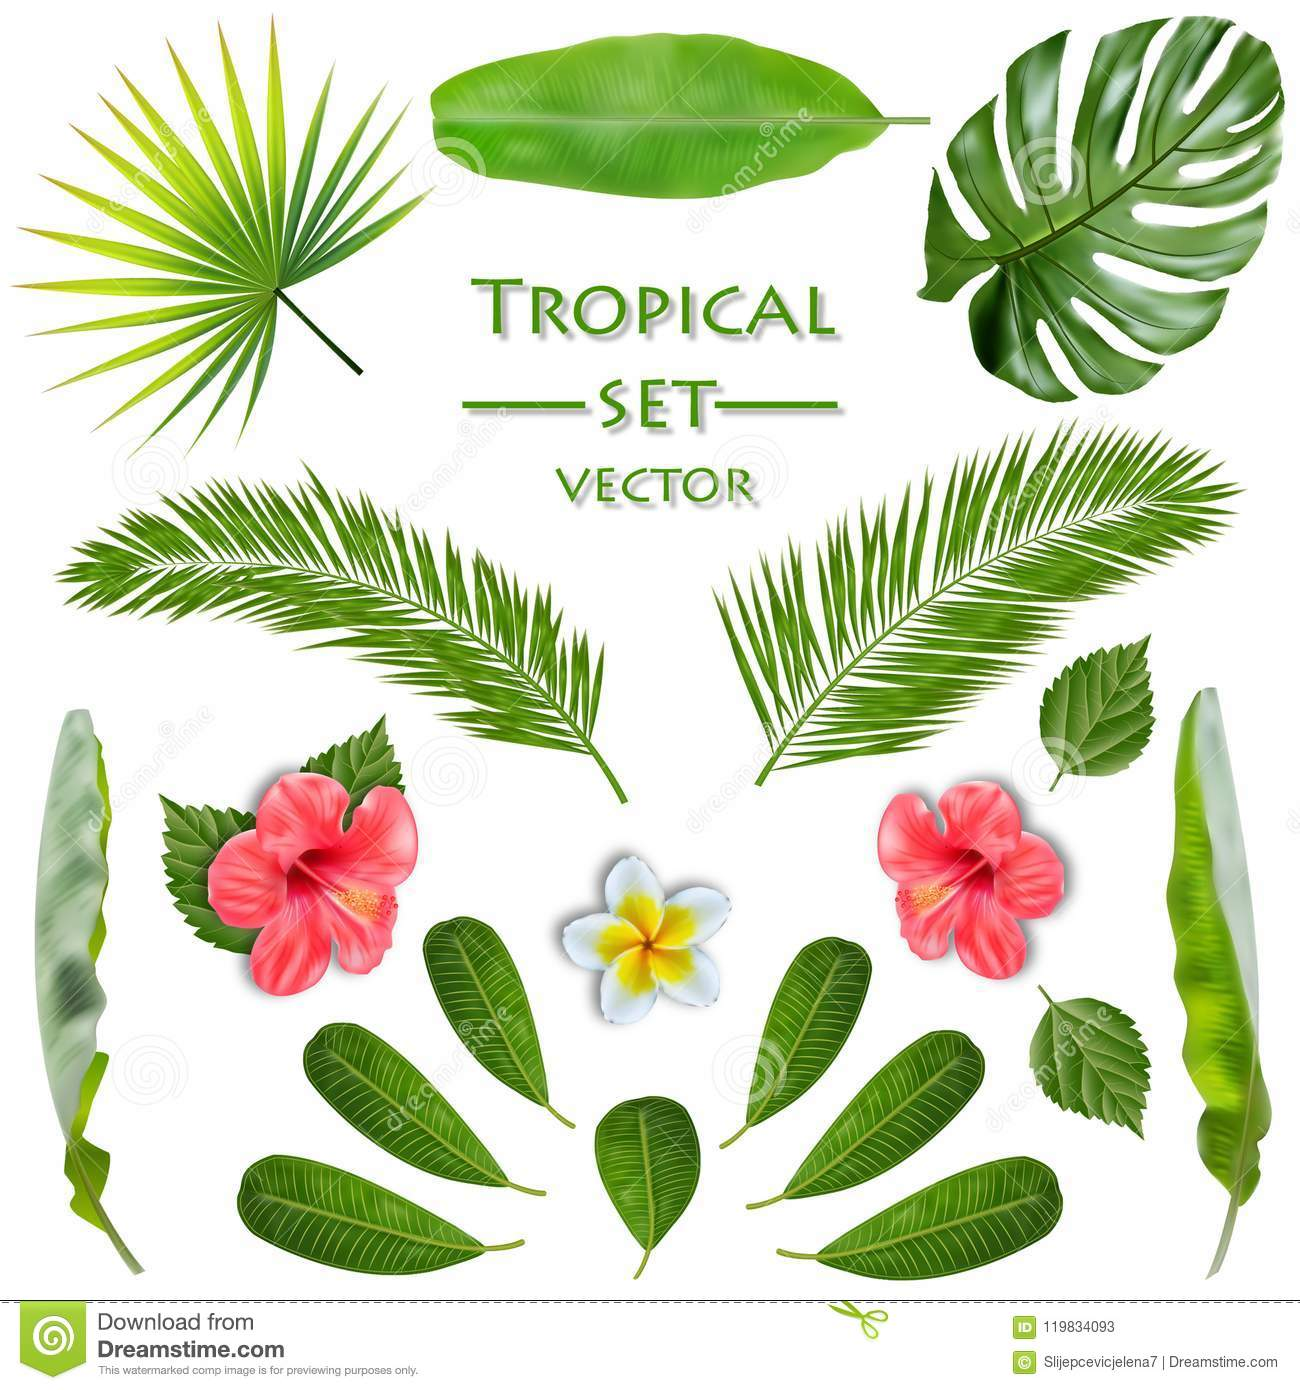 Ensemble de plante tropicale Vecteur